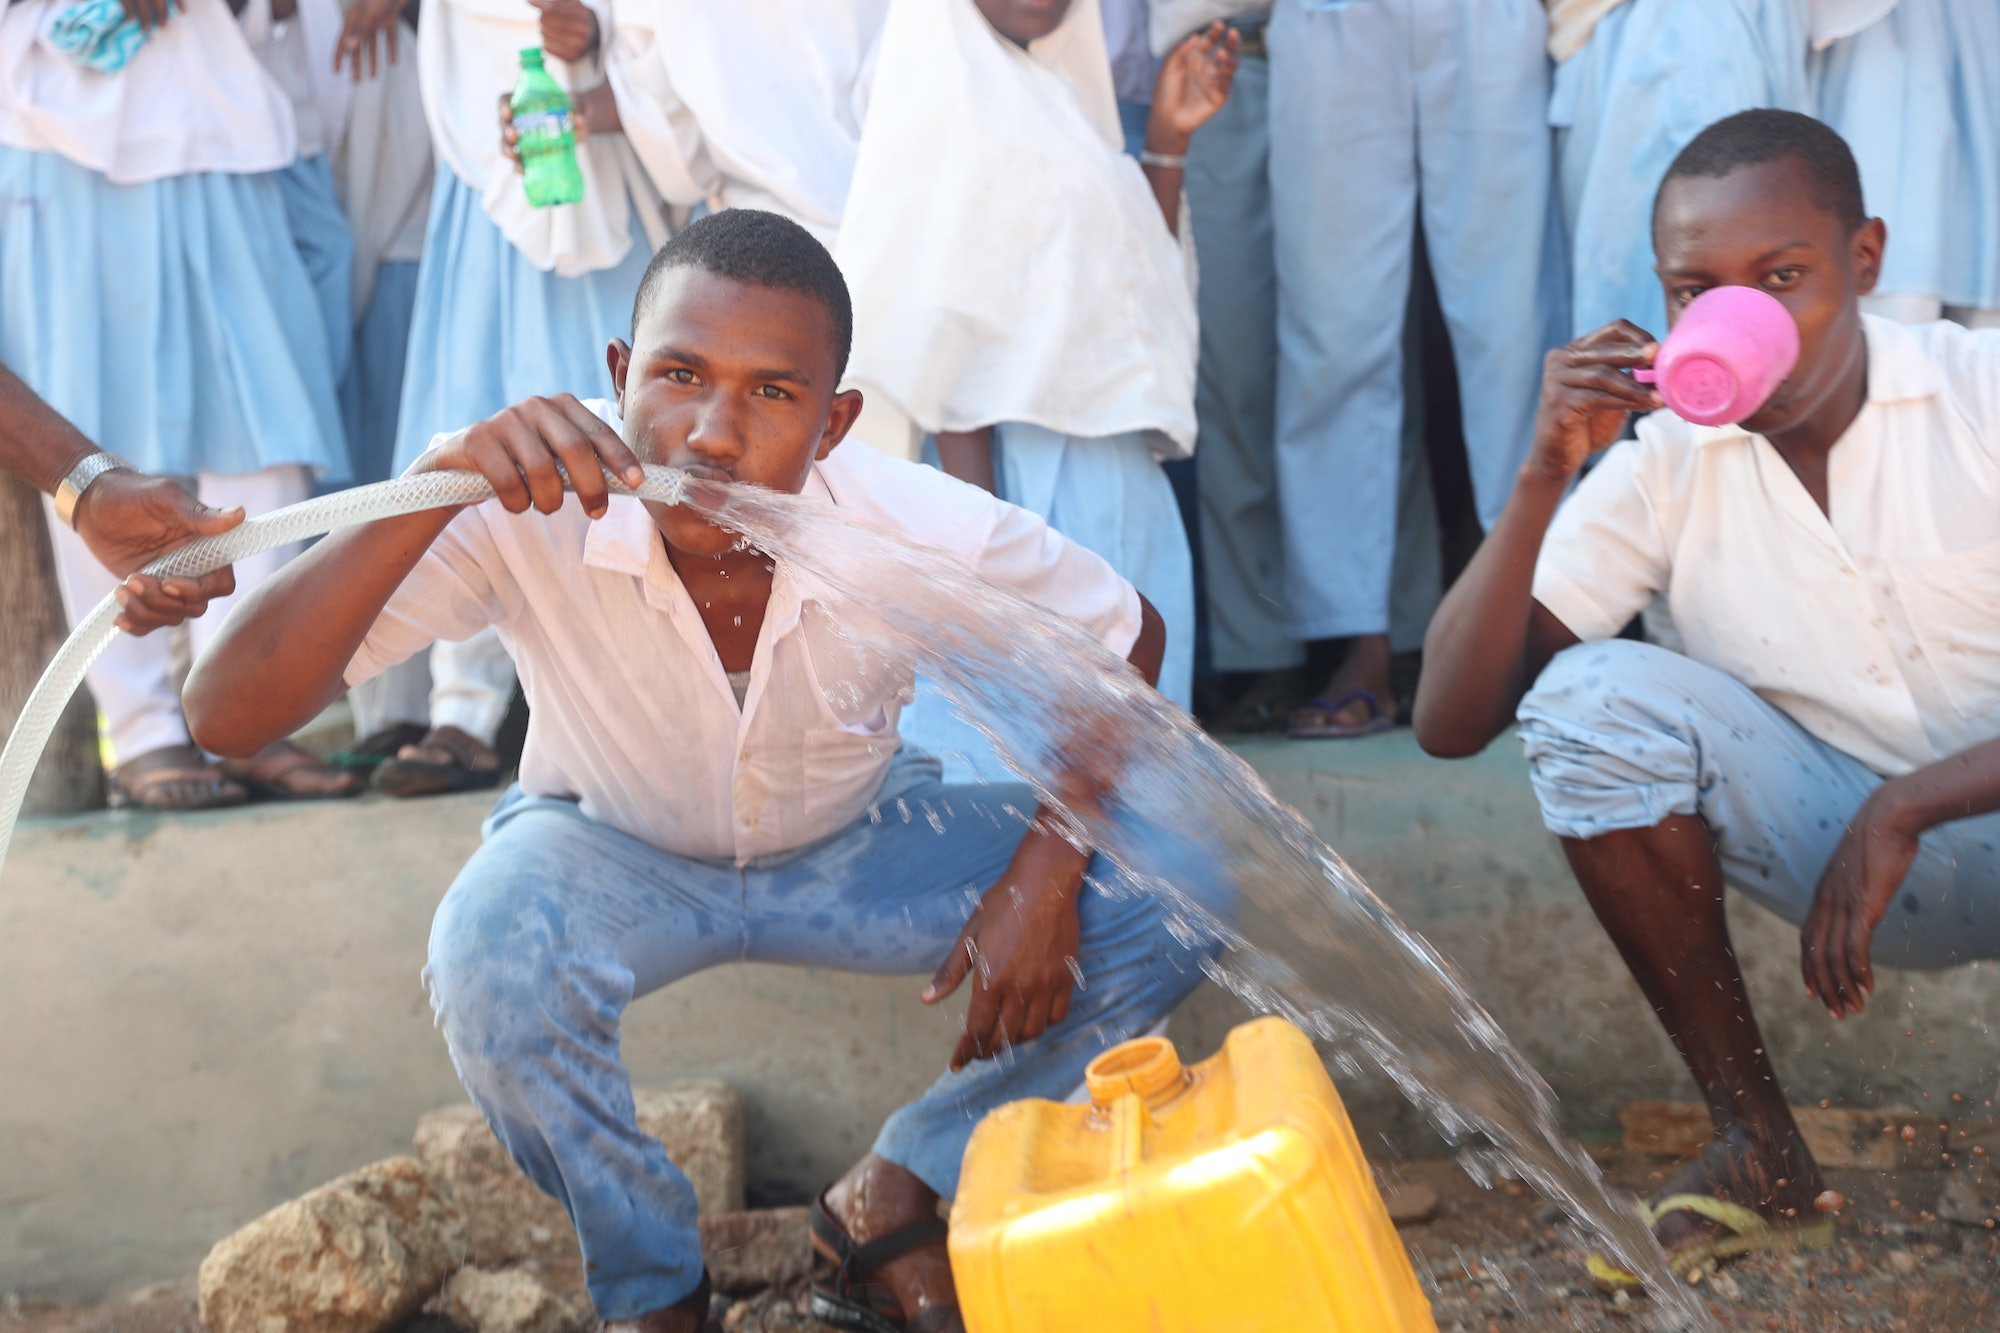 The system provides clean water.